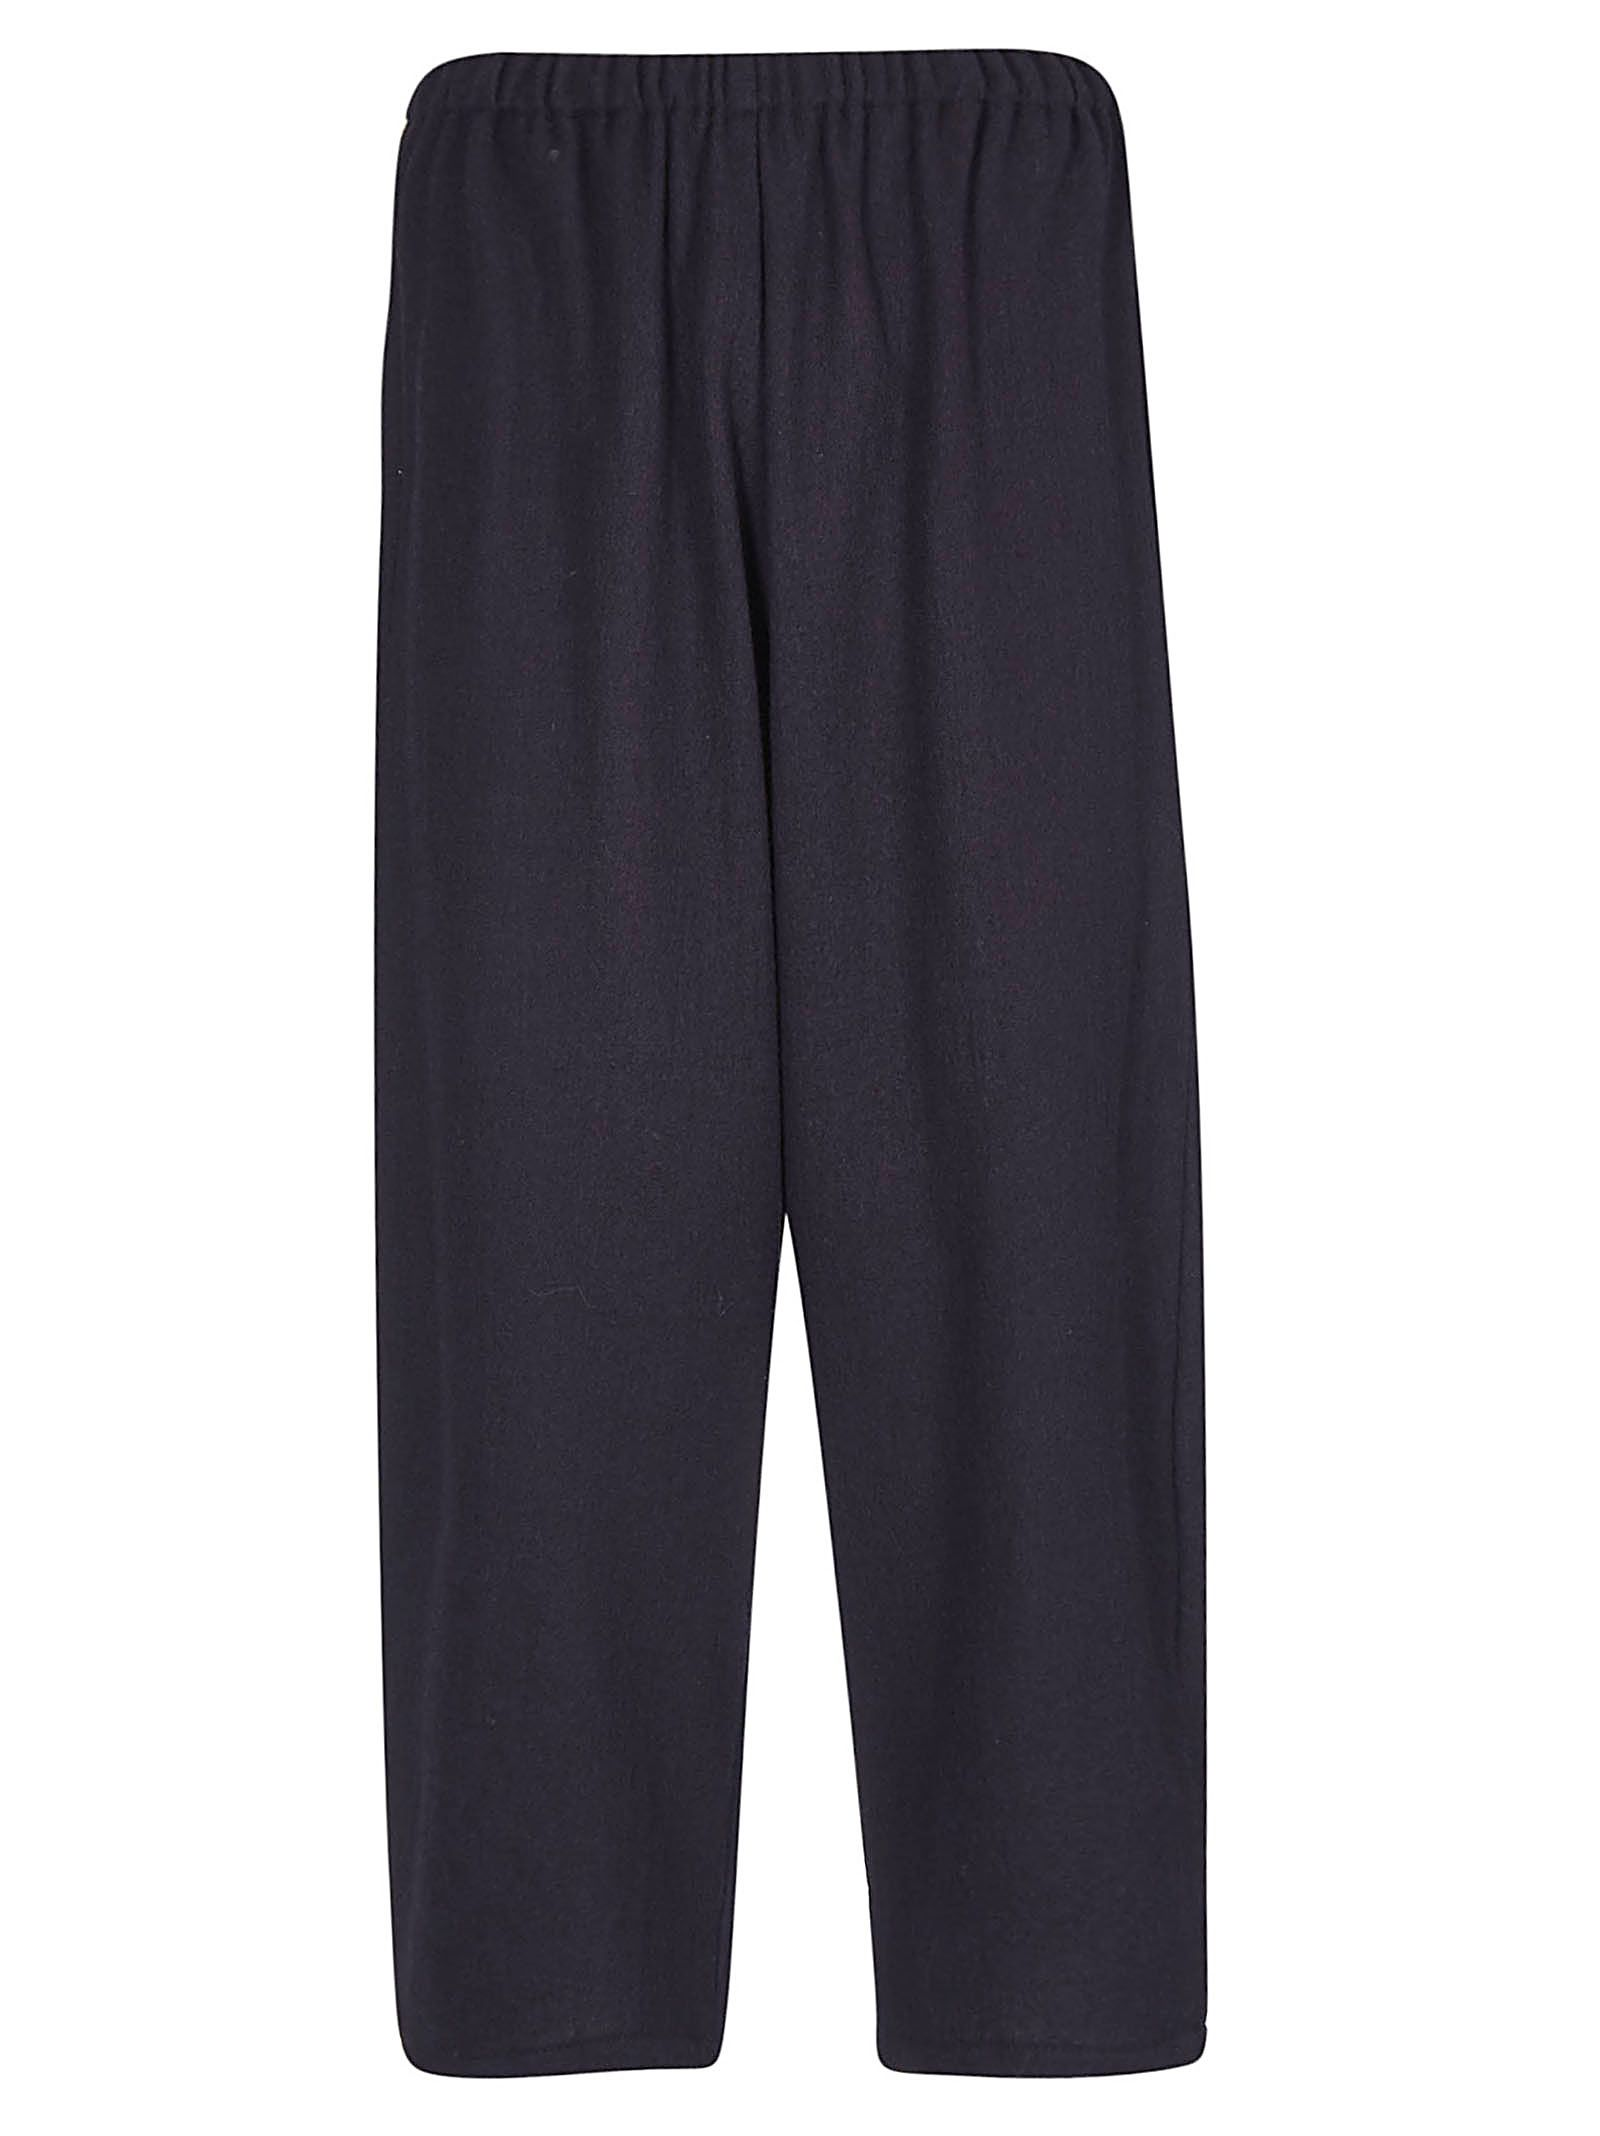 A PUNTO B A.B Elasticated Cropped Trousers in Navy